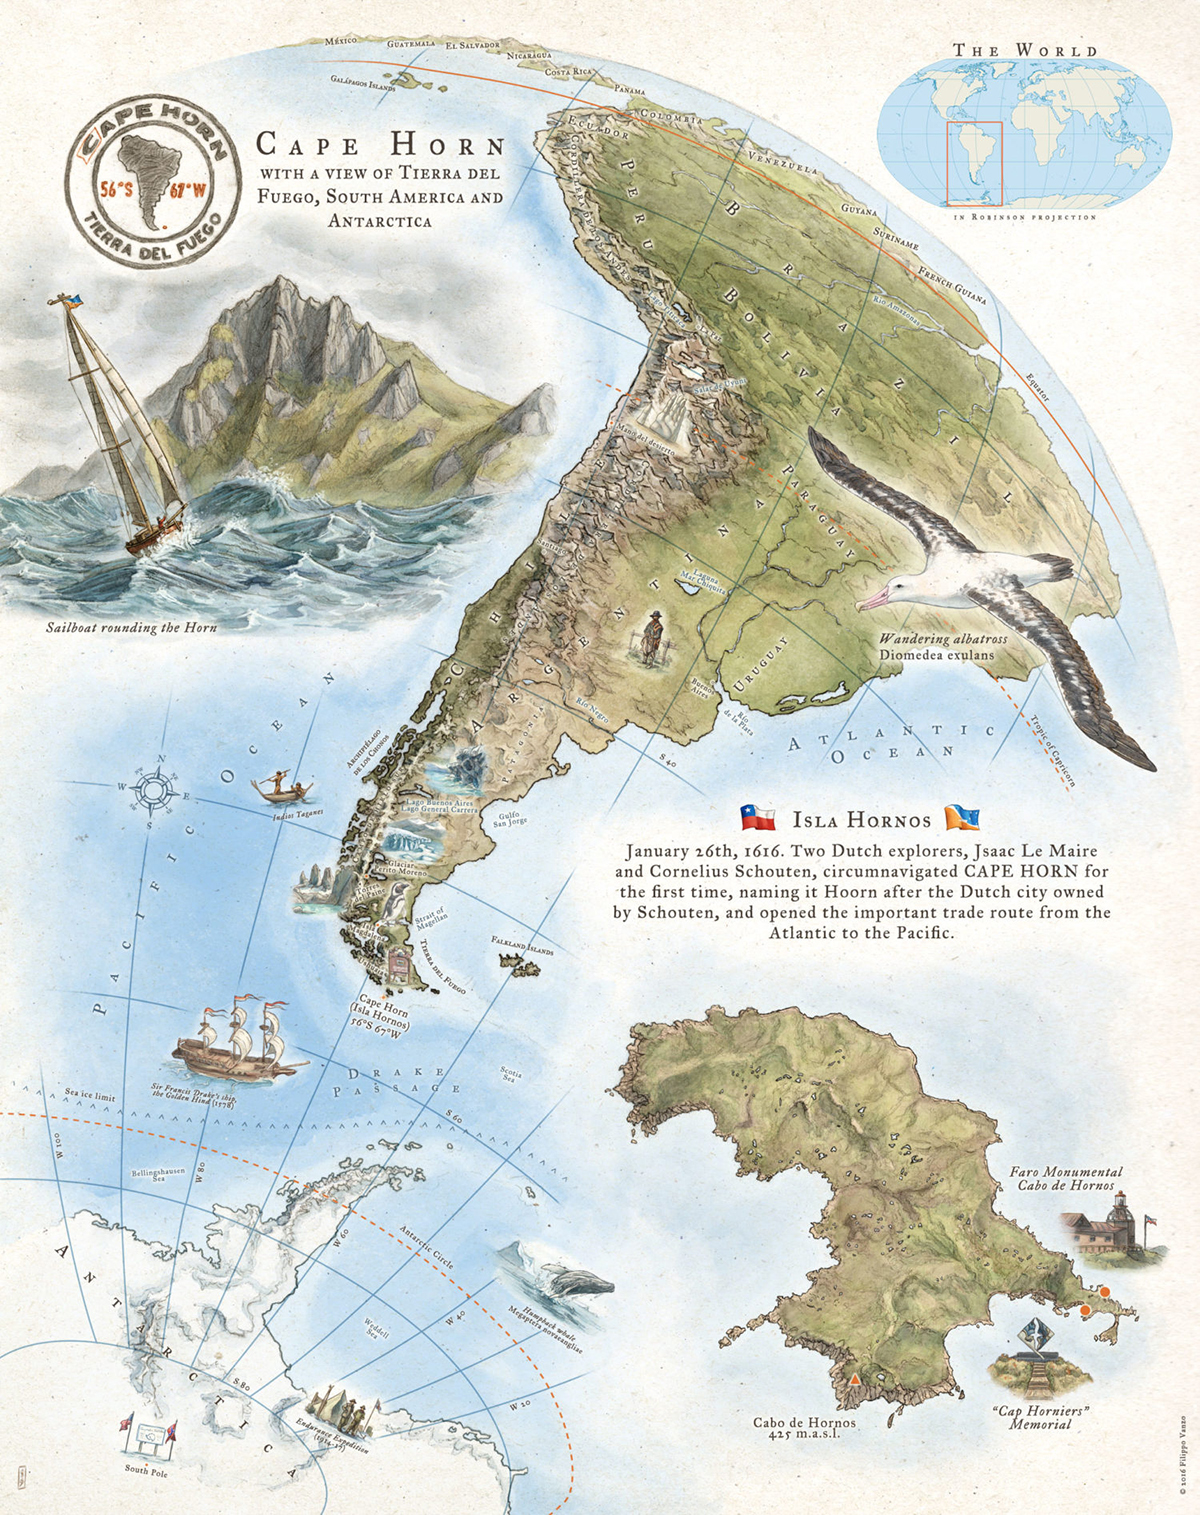 A gorgeous sketch map of Isla Hornos and Cabo de Hornos, edging into the Drake Passage and the goal of the expedition. For more amazing versions, see http://onezillustration.com/projects/